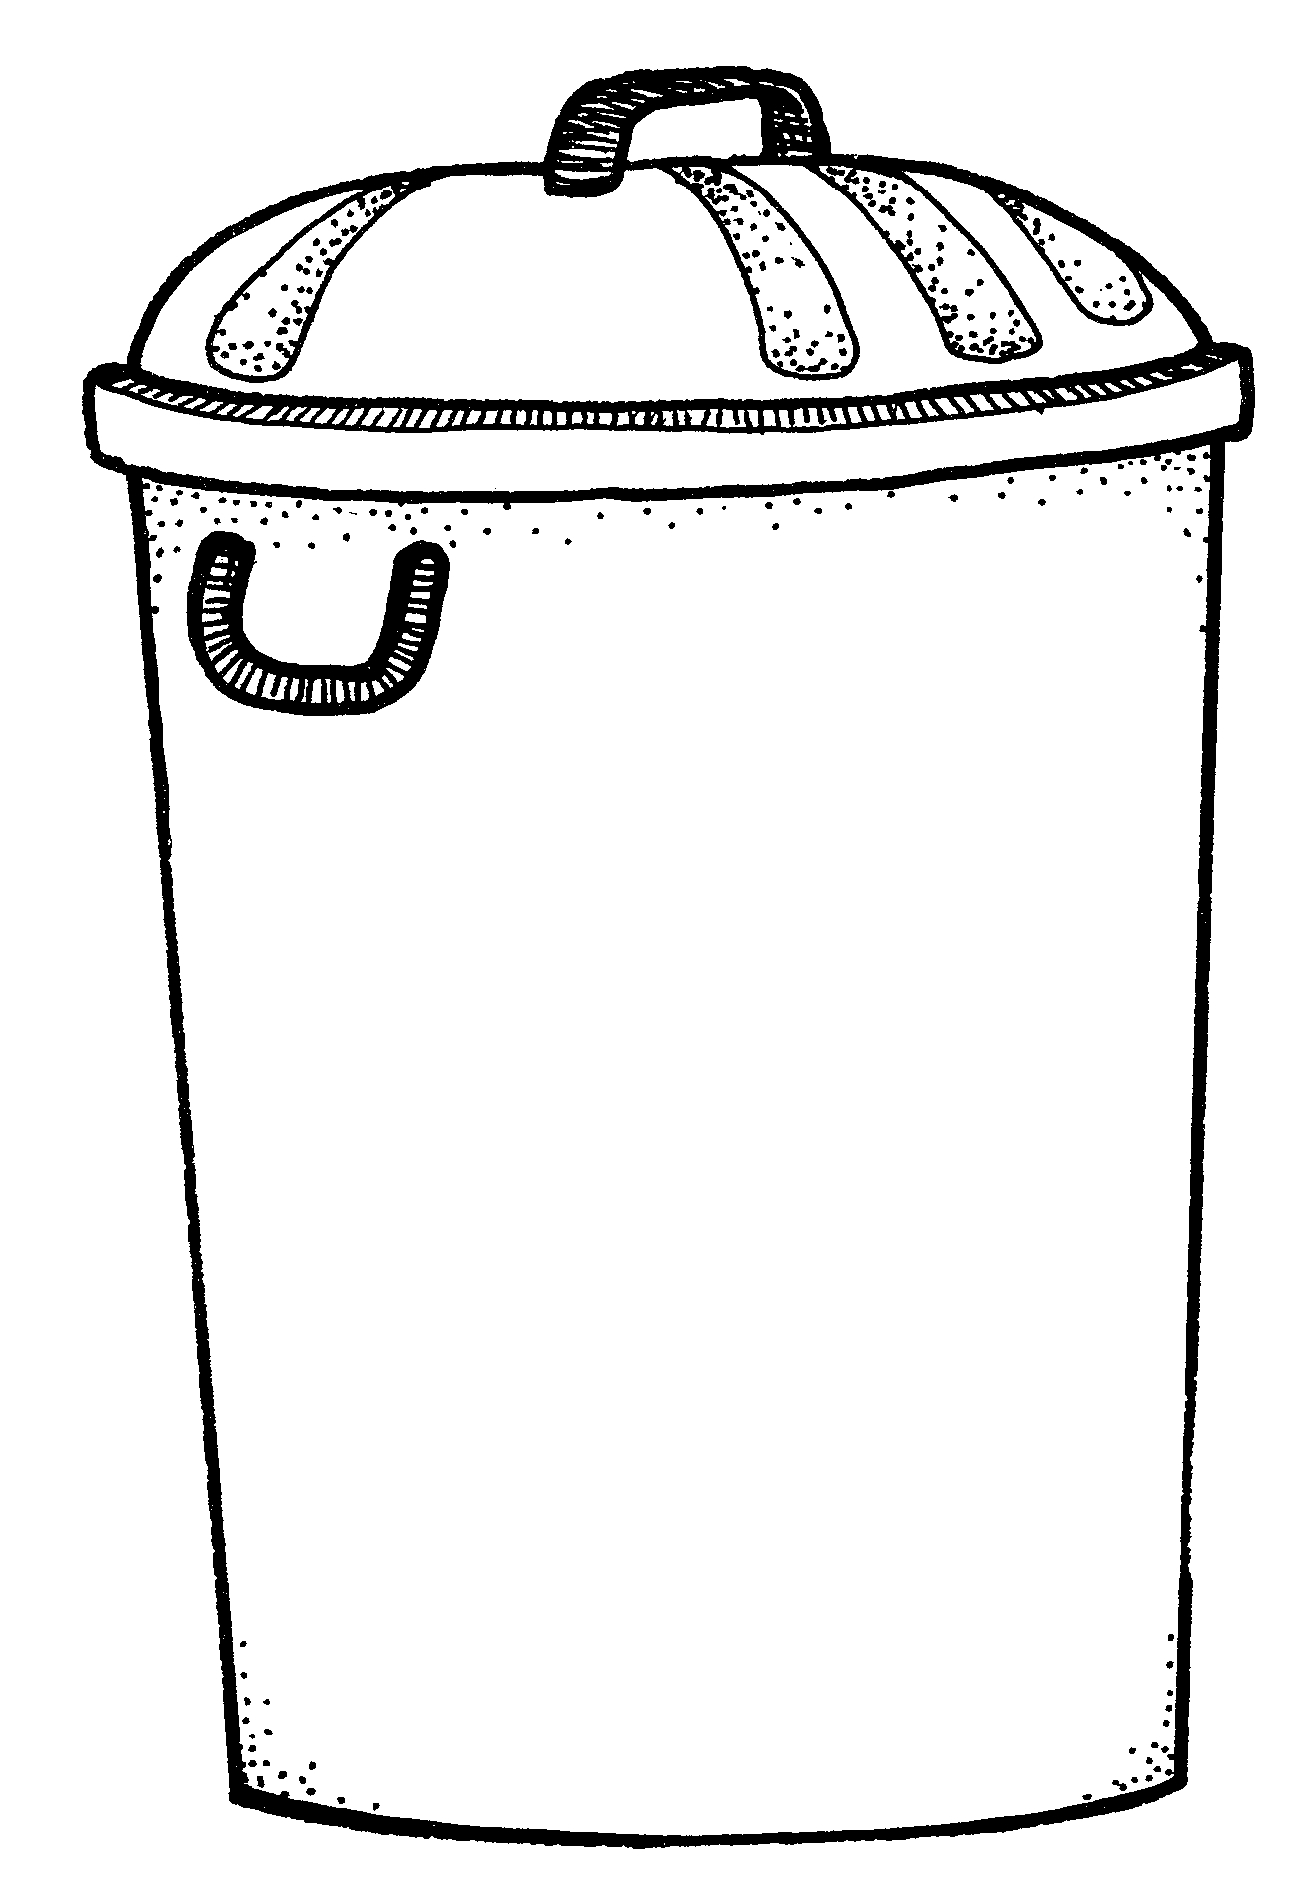 art-black-and-white-broom-clipart-black-and-white-cg_garbage-can.jpg ...